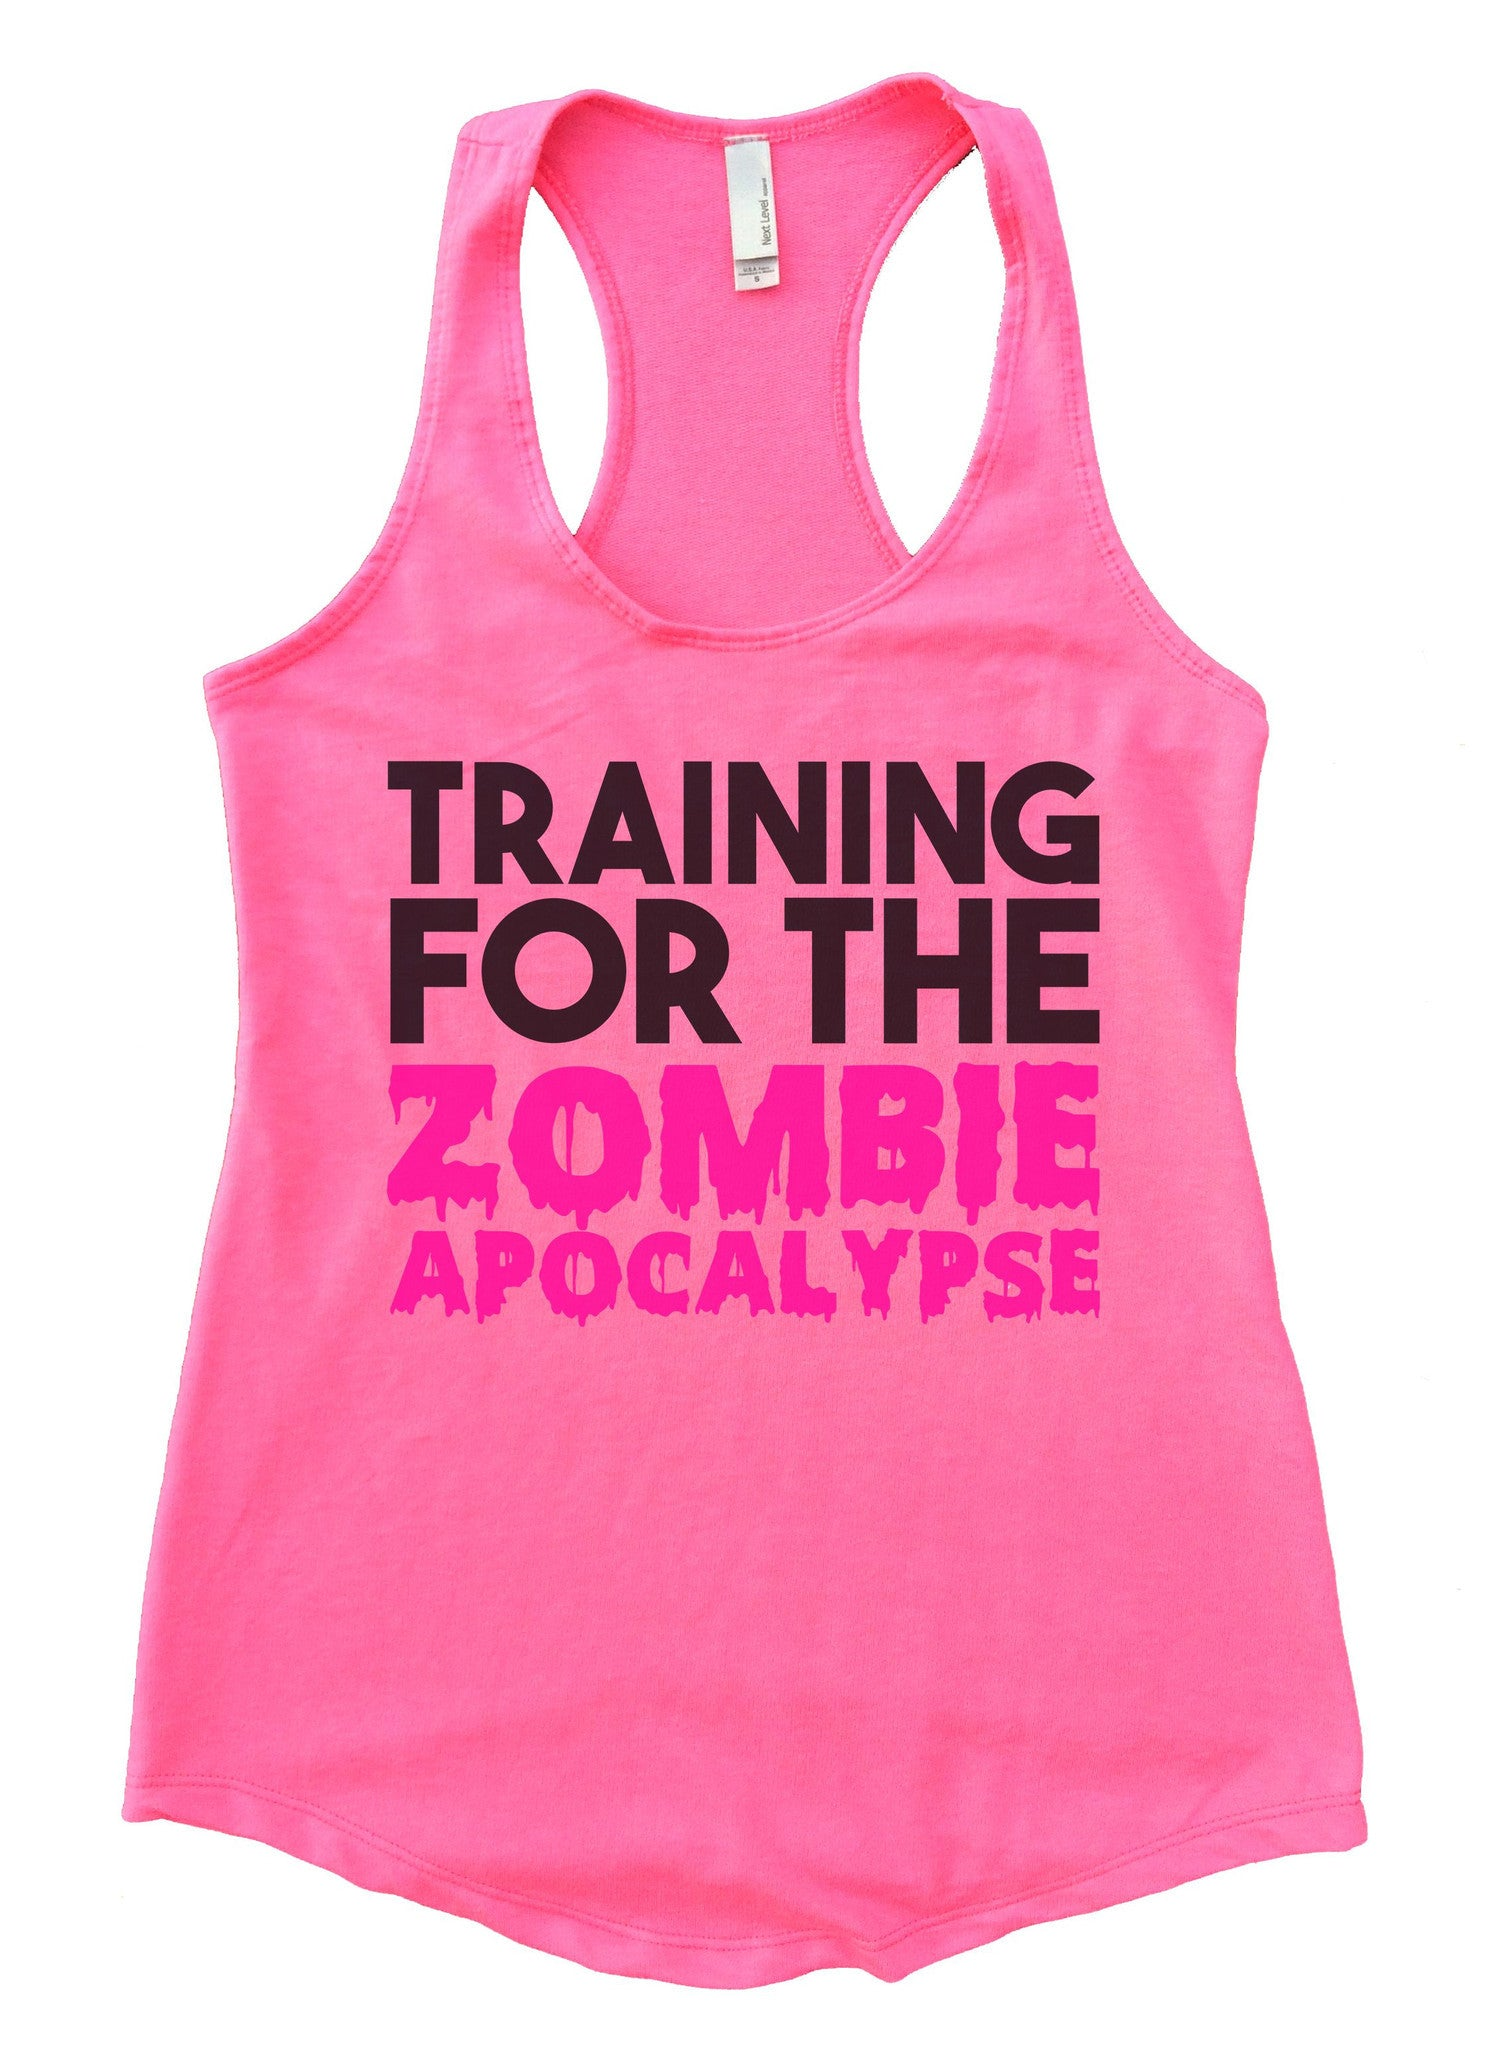 Training For The Zombie Apocalypse Womens Workout Tank Top F873 - Funny Shirts Tank Tops Burnouts and Triblends  - 3